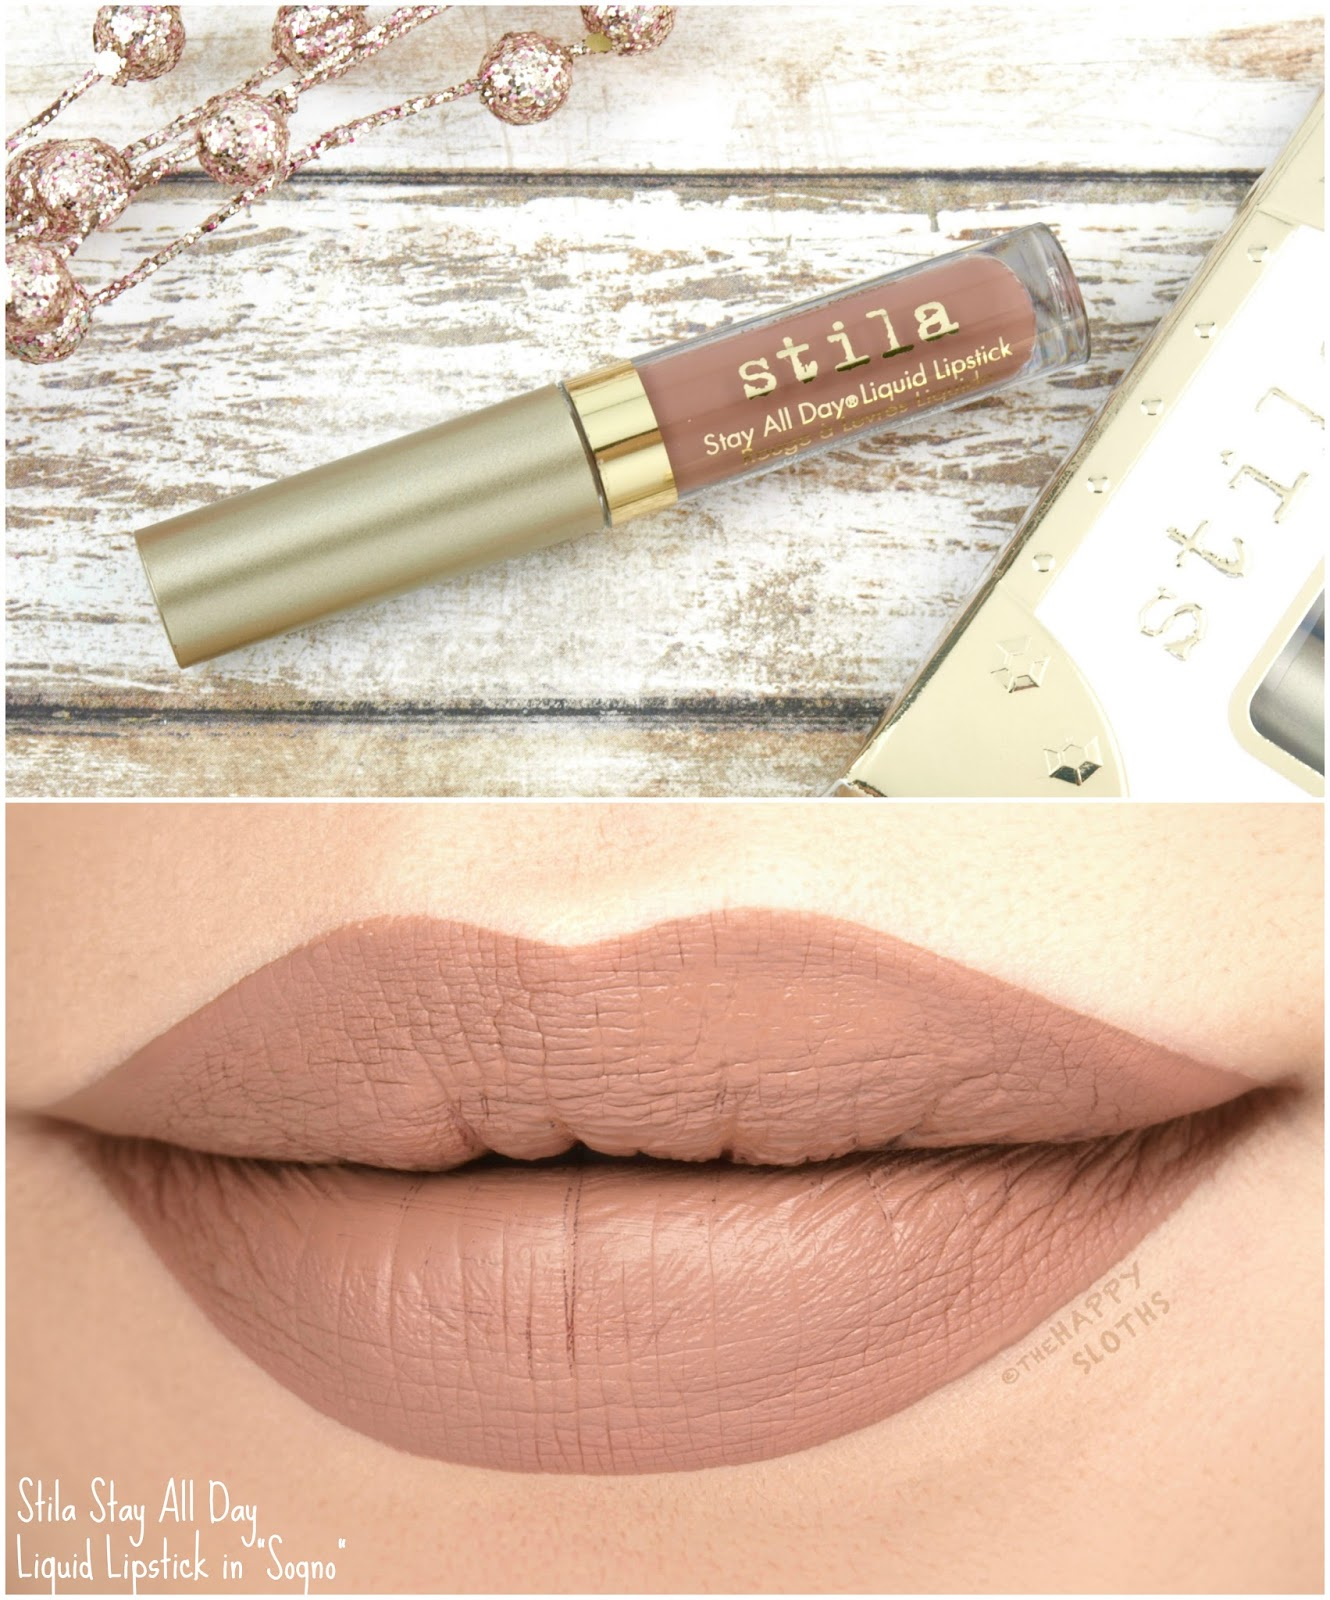 "Stila Stay All Day Liquid Lipstick in ""Sogno"": Review and Swatches"